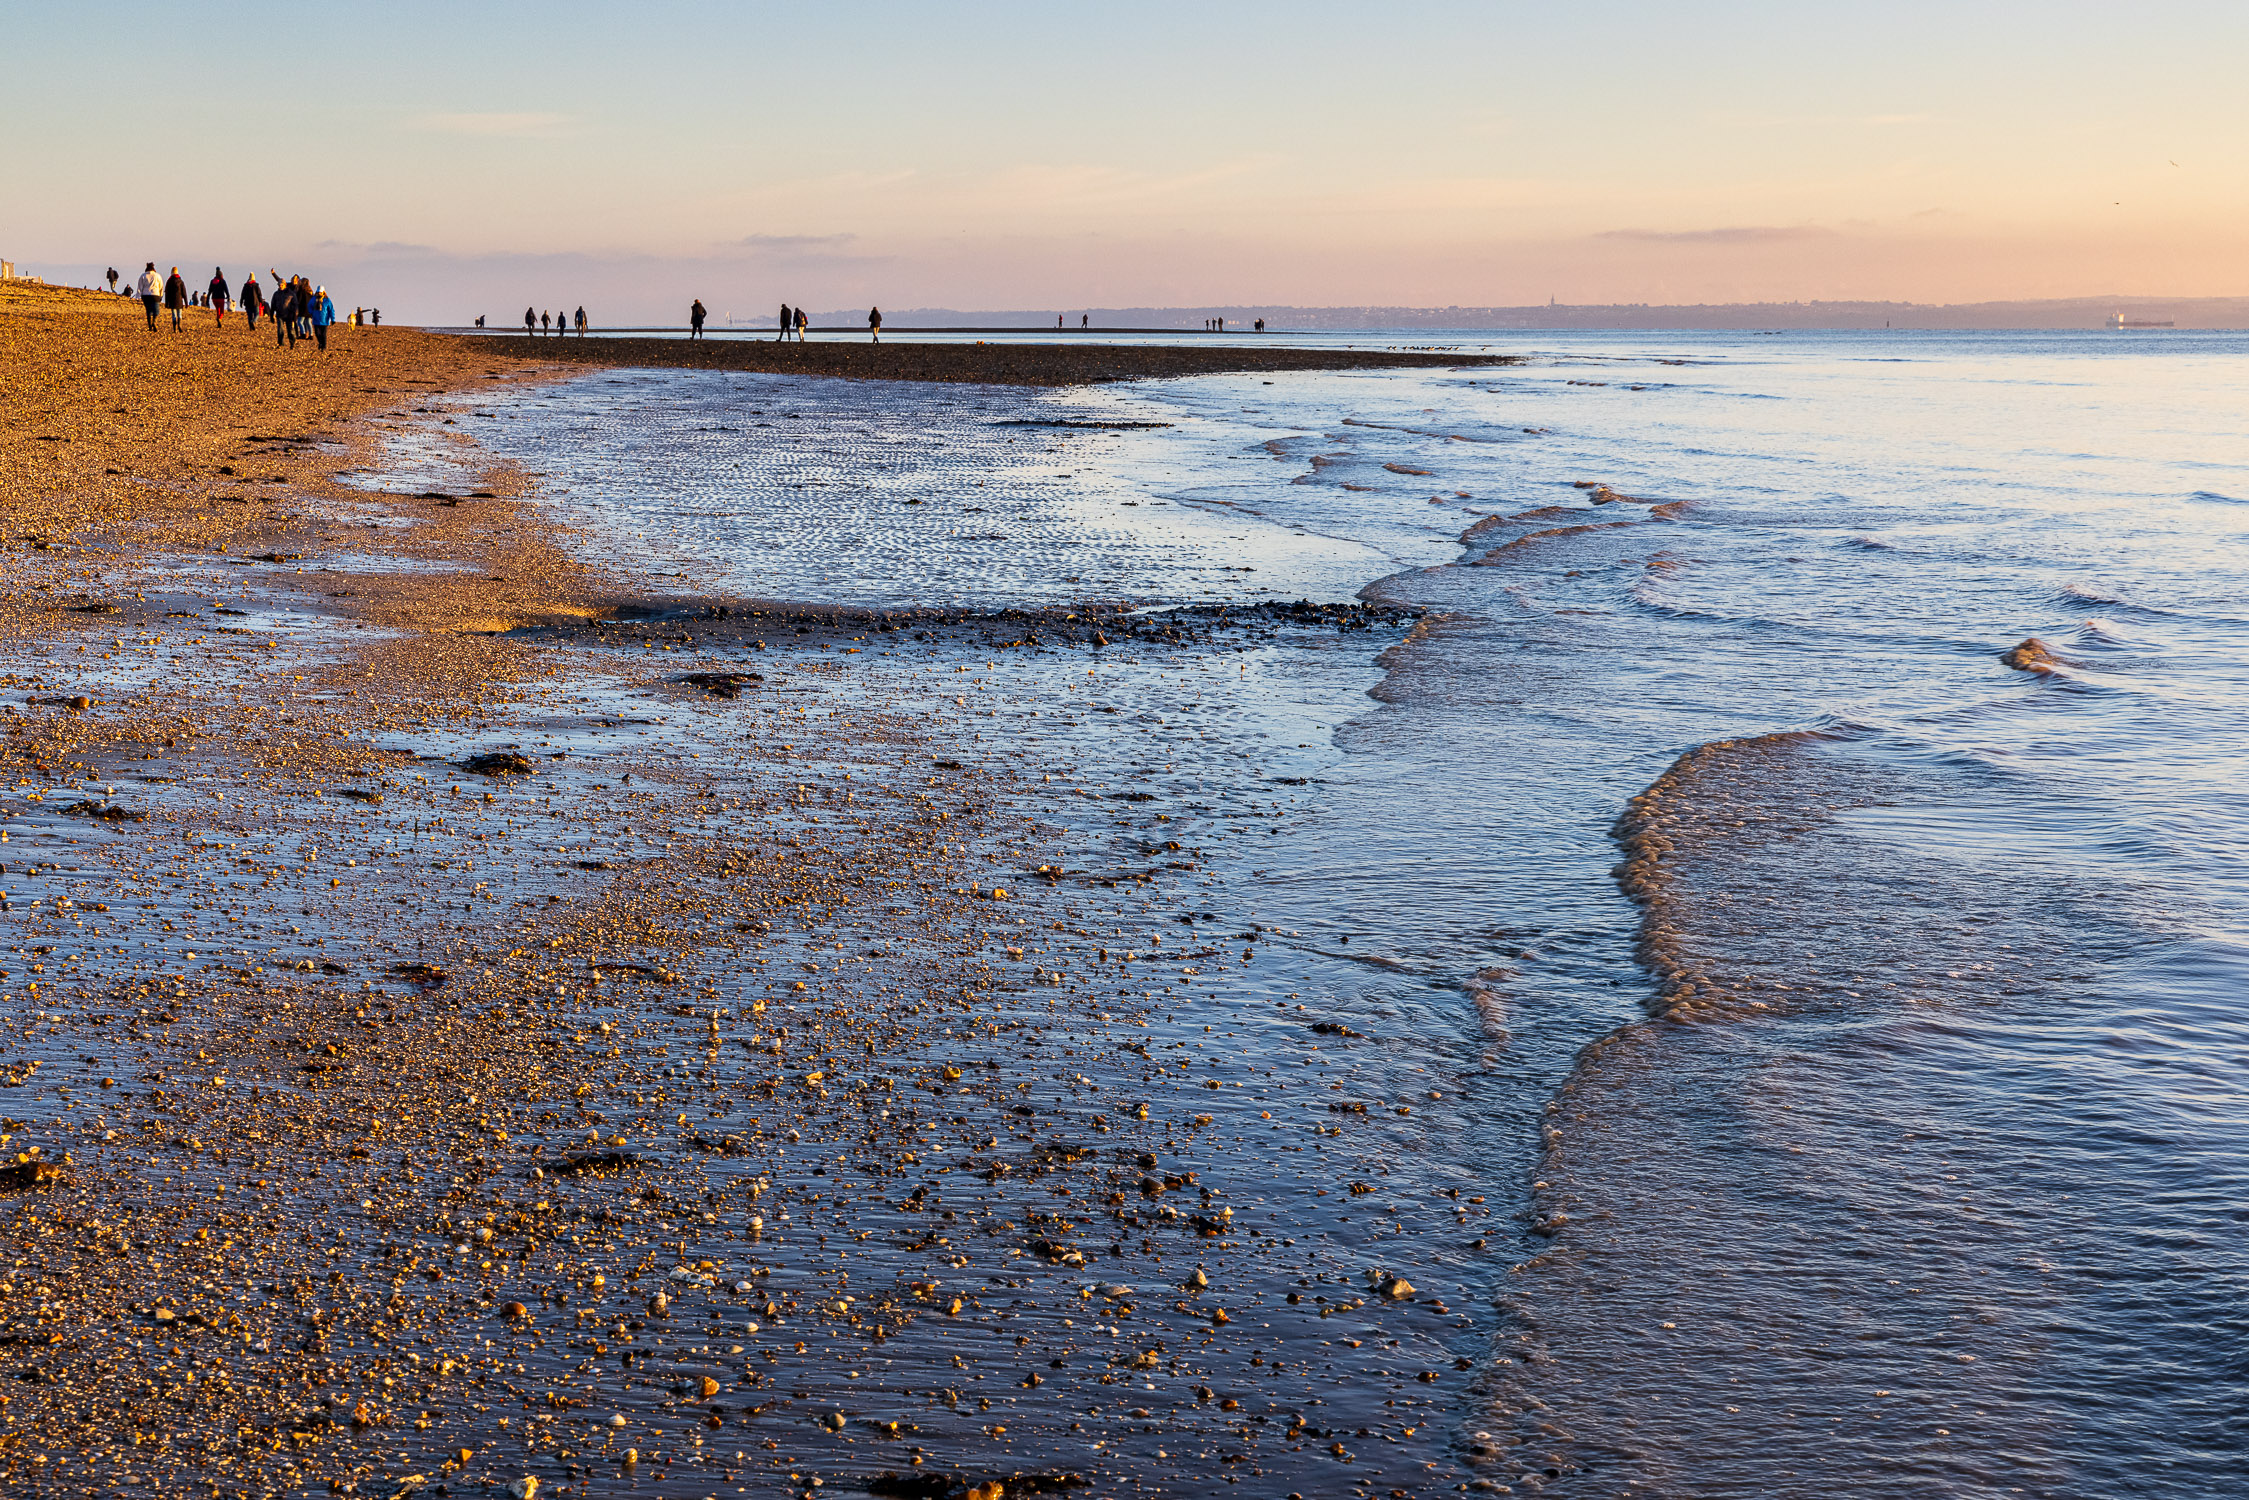 Gentle waves from the receding tide lap the gravel beach at Meon Beach as people take an afternoon stroll on a chill December day.